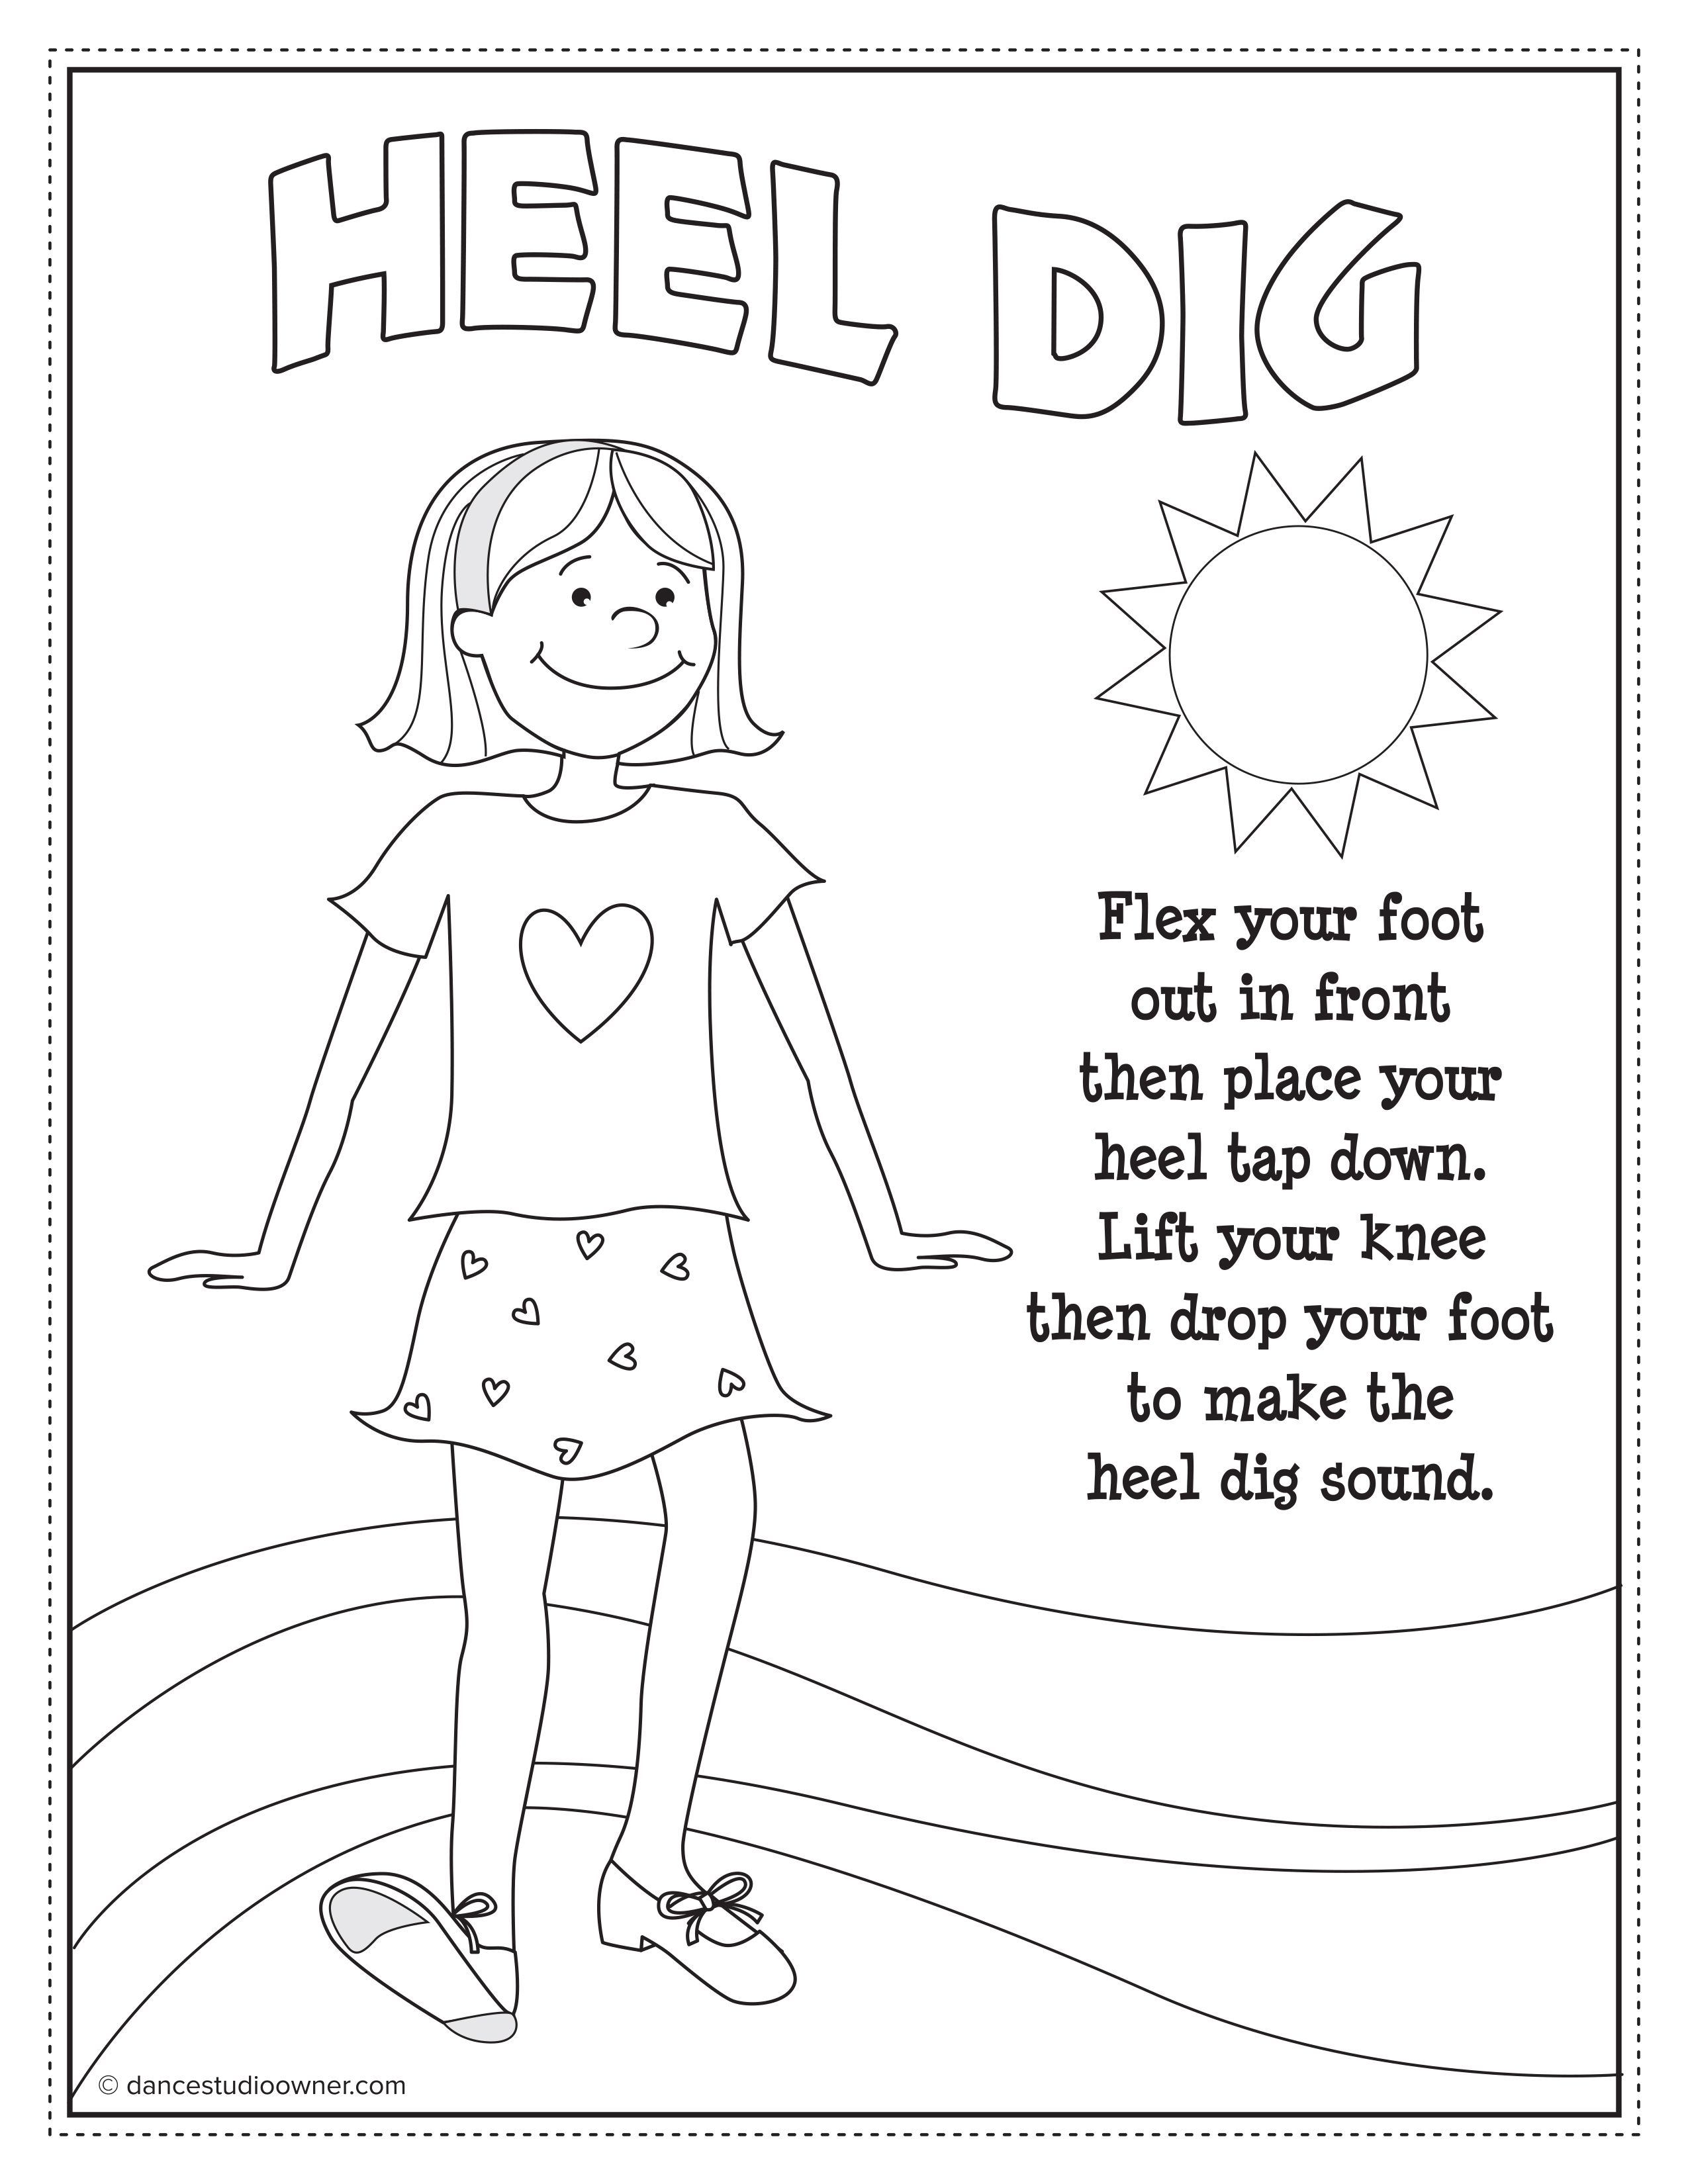 Free Tap Dancing Printable Coloring Pages From Dancestudioowner Com Dance Coloring Pages Dance Instruction Dance Crafts